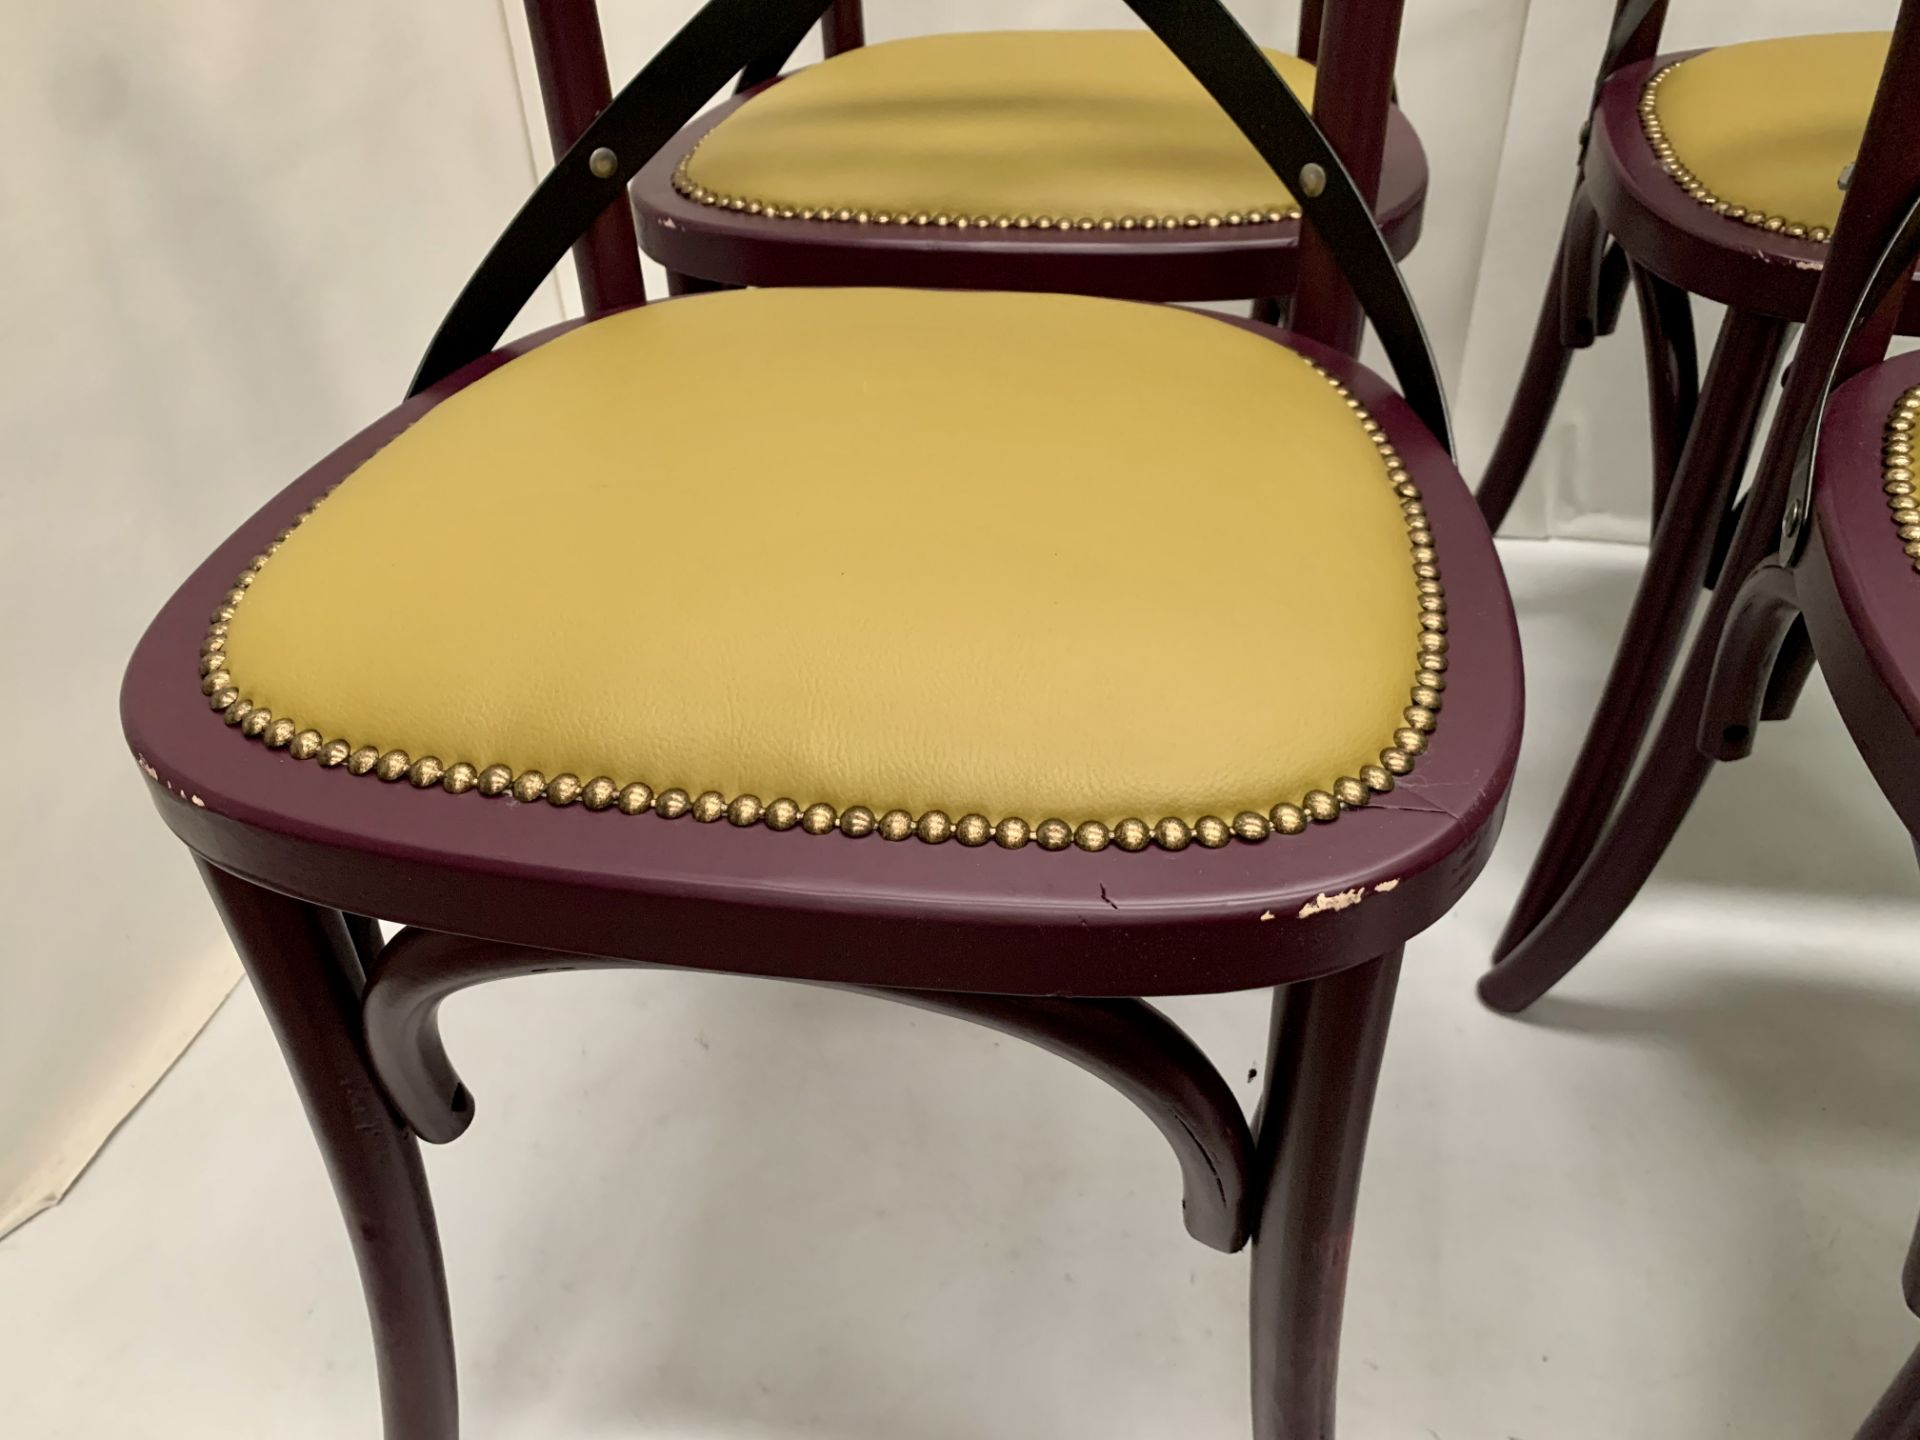 4 x Palm dark purple wooden dining chairs with raw coloured leather effect seats - 51cm x 55cm x - Image 2 of 3